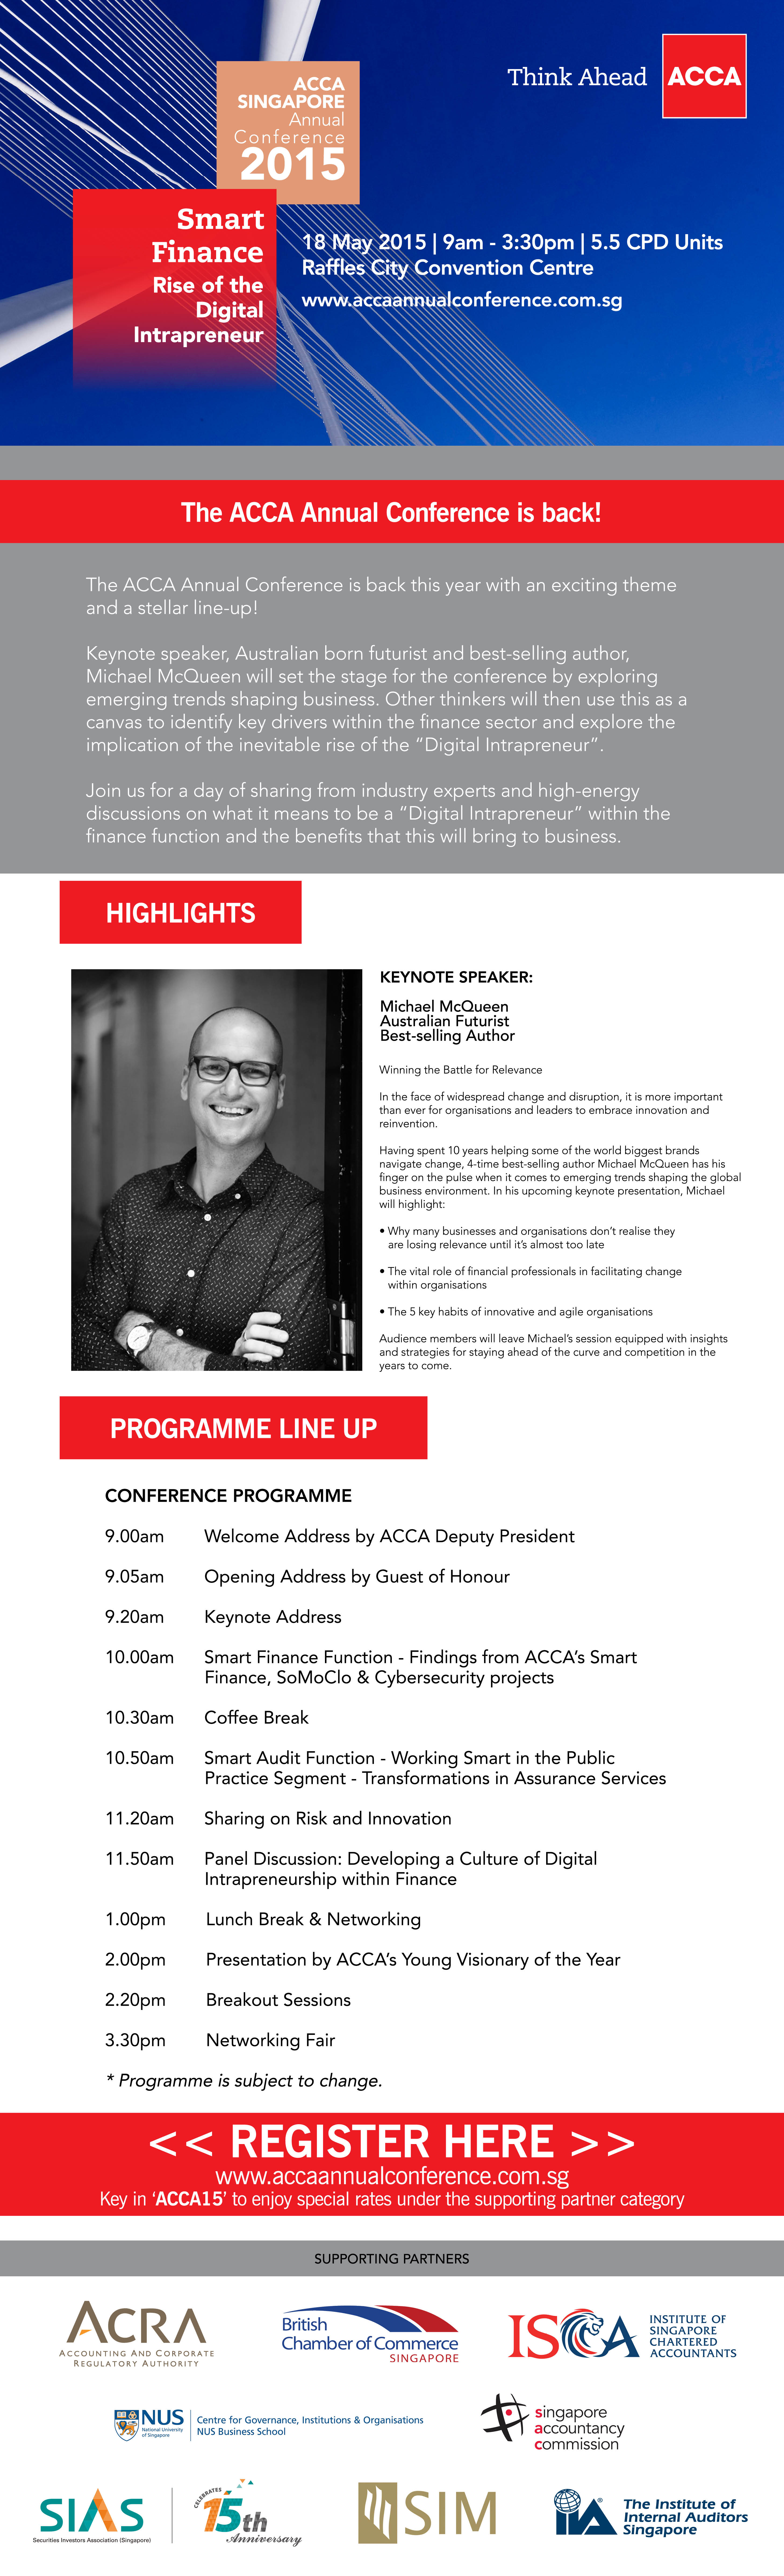 ISCA supports the ACCA Annual Conference 2015